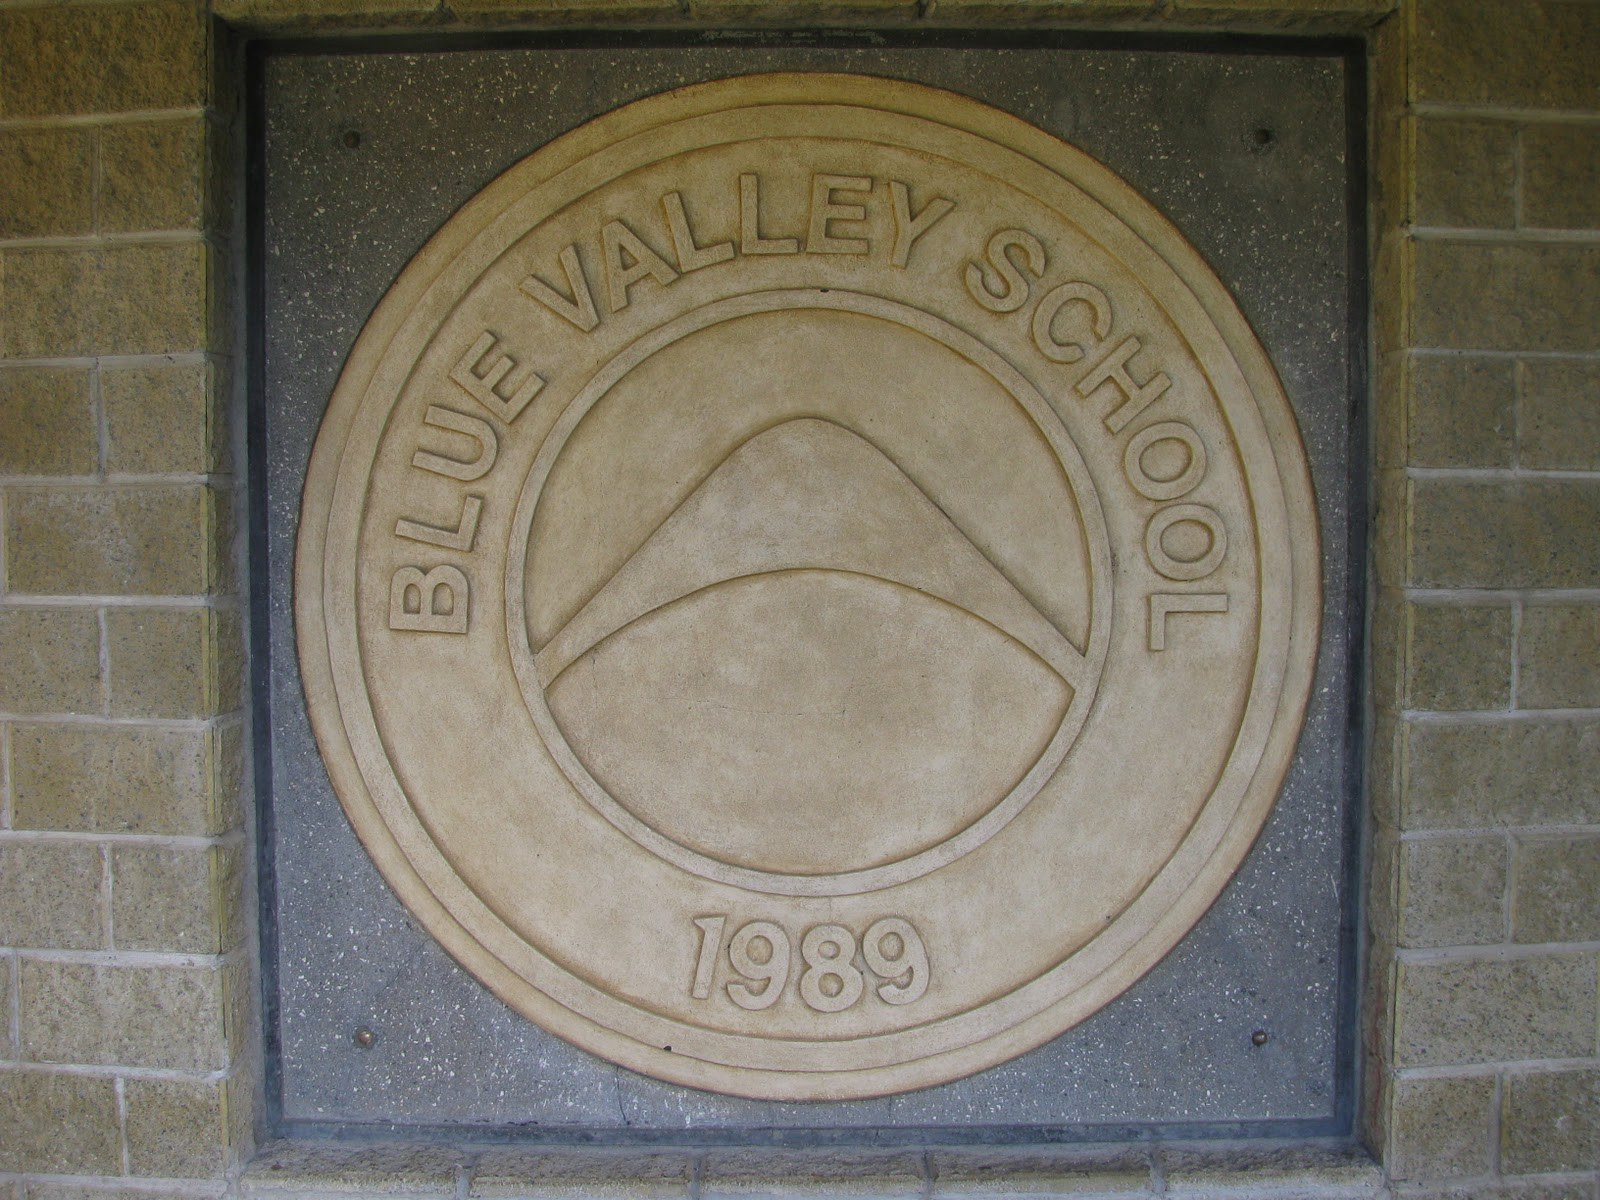 The Blue Valley School is